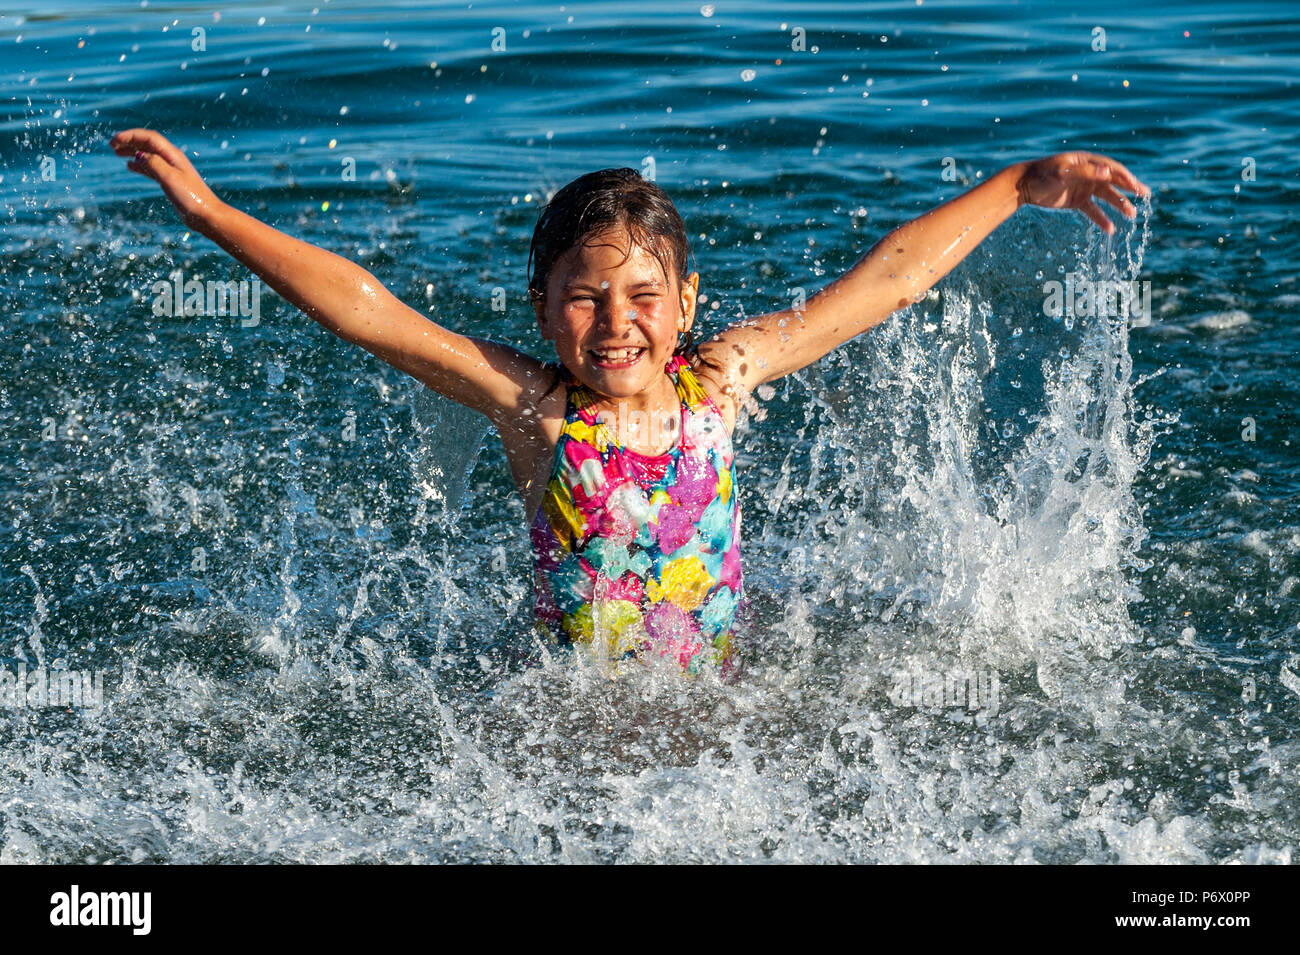 Schull, West Cork, Ireland . Hannah O'Driscoll, 7, from Ballydehob, plays, in the sea this evening. The heatwave shows no sign of ending with temperatures forecast to be in the high 20°'s Celsius for at least a week. Credit: Andy Gibson/Alamy Live News. - Stock Image